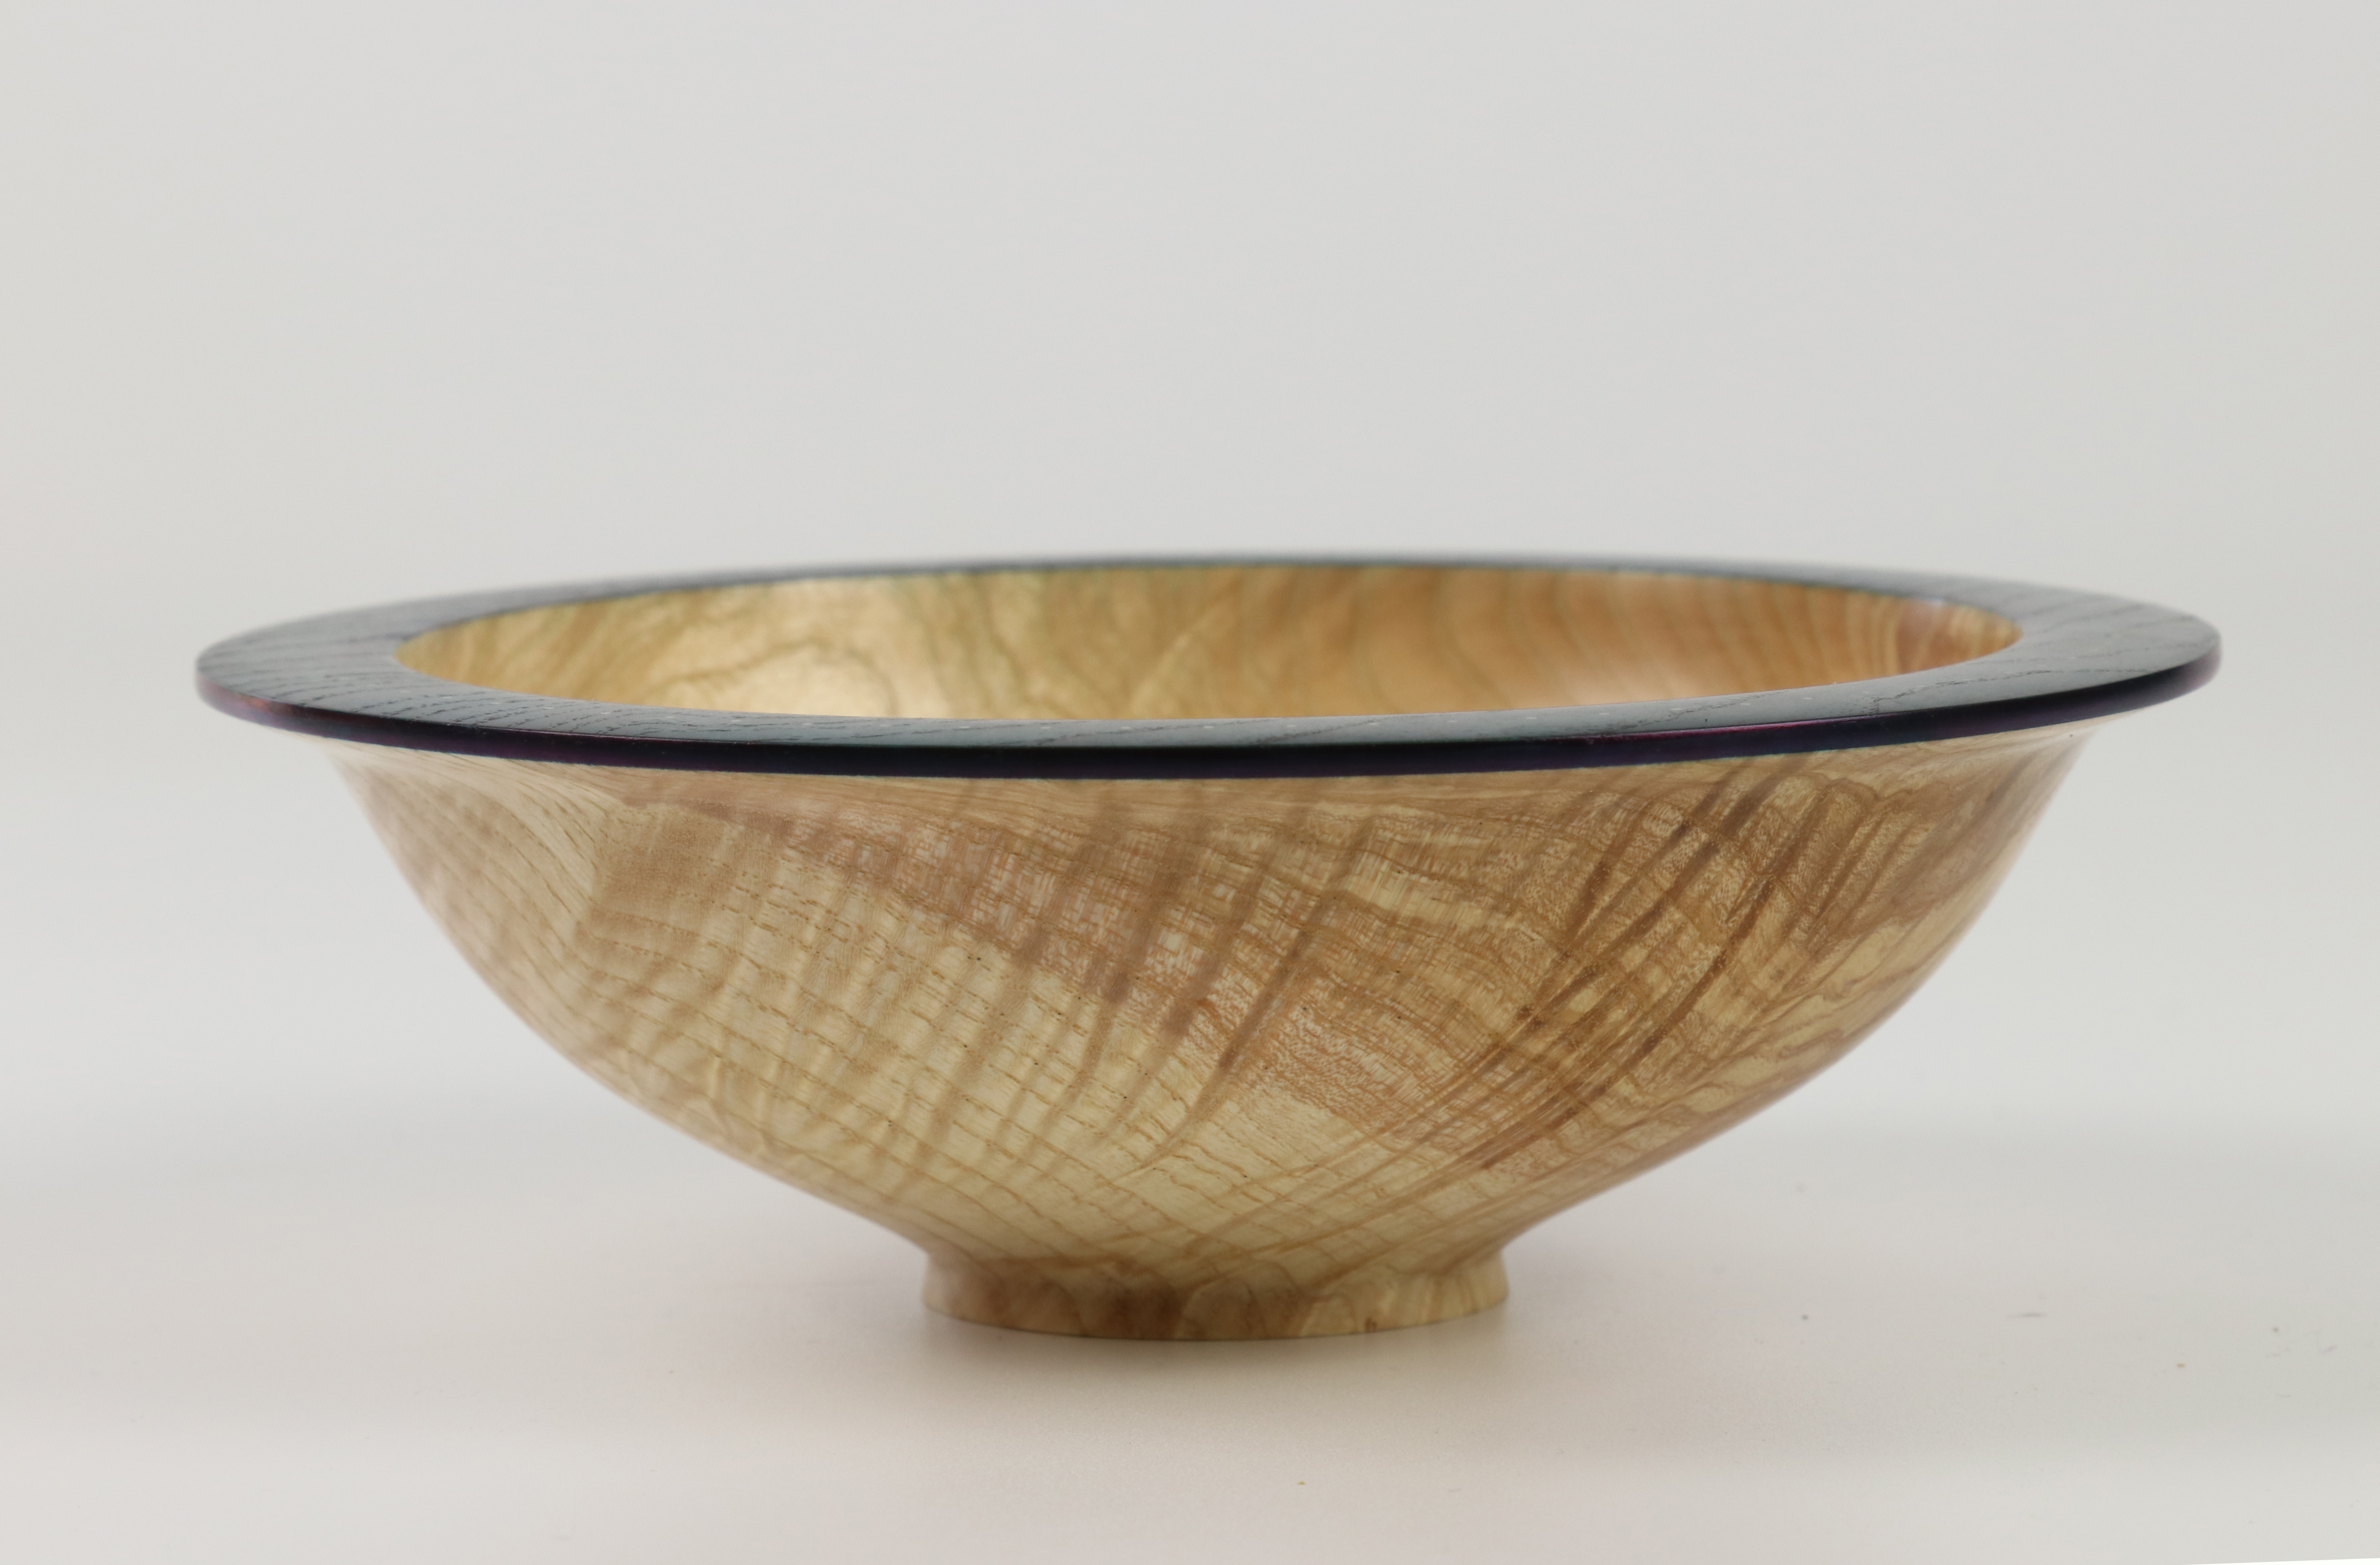 Lot 99 - Roger Bennett (Ireland) rippled ash bowl with coloured rim, decorated with gold inlay 5x15cm. Signed